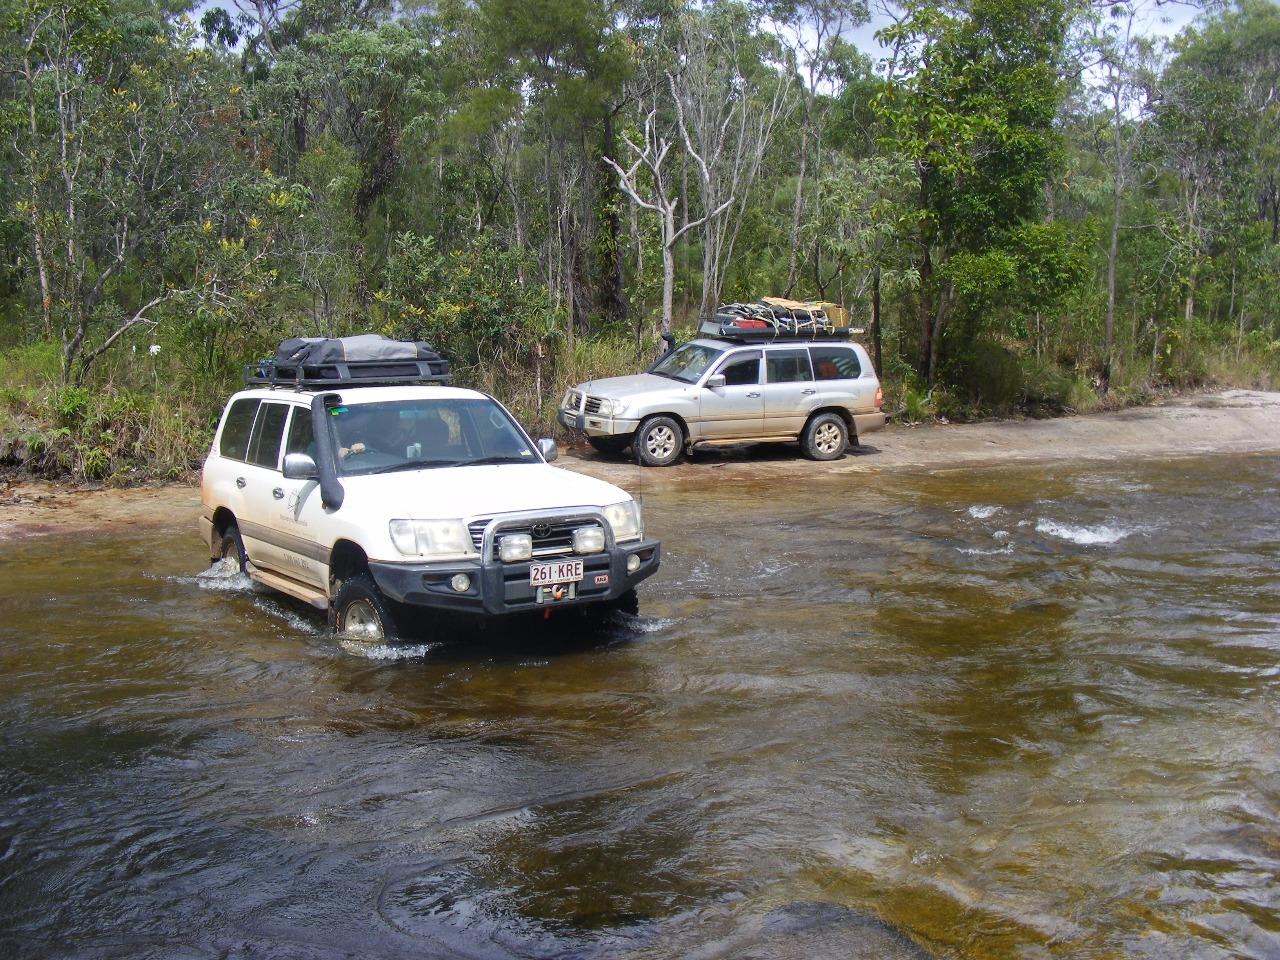 Cape York 8 Day Cairns To Cape York 4wd Discovery Tour Queensland